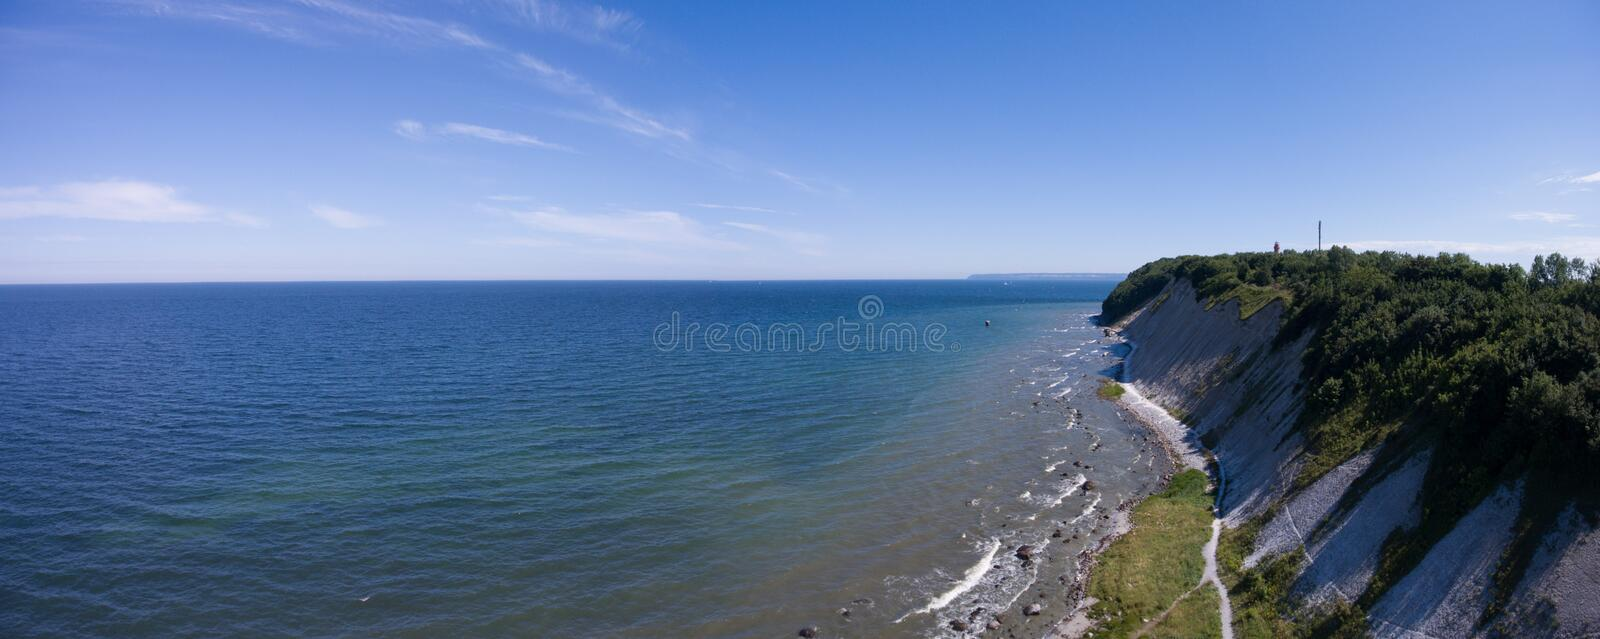 Coastal Landscape at Kap Arkona on Ruegen Island baltic Sea royalty free stock photos